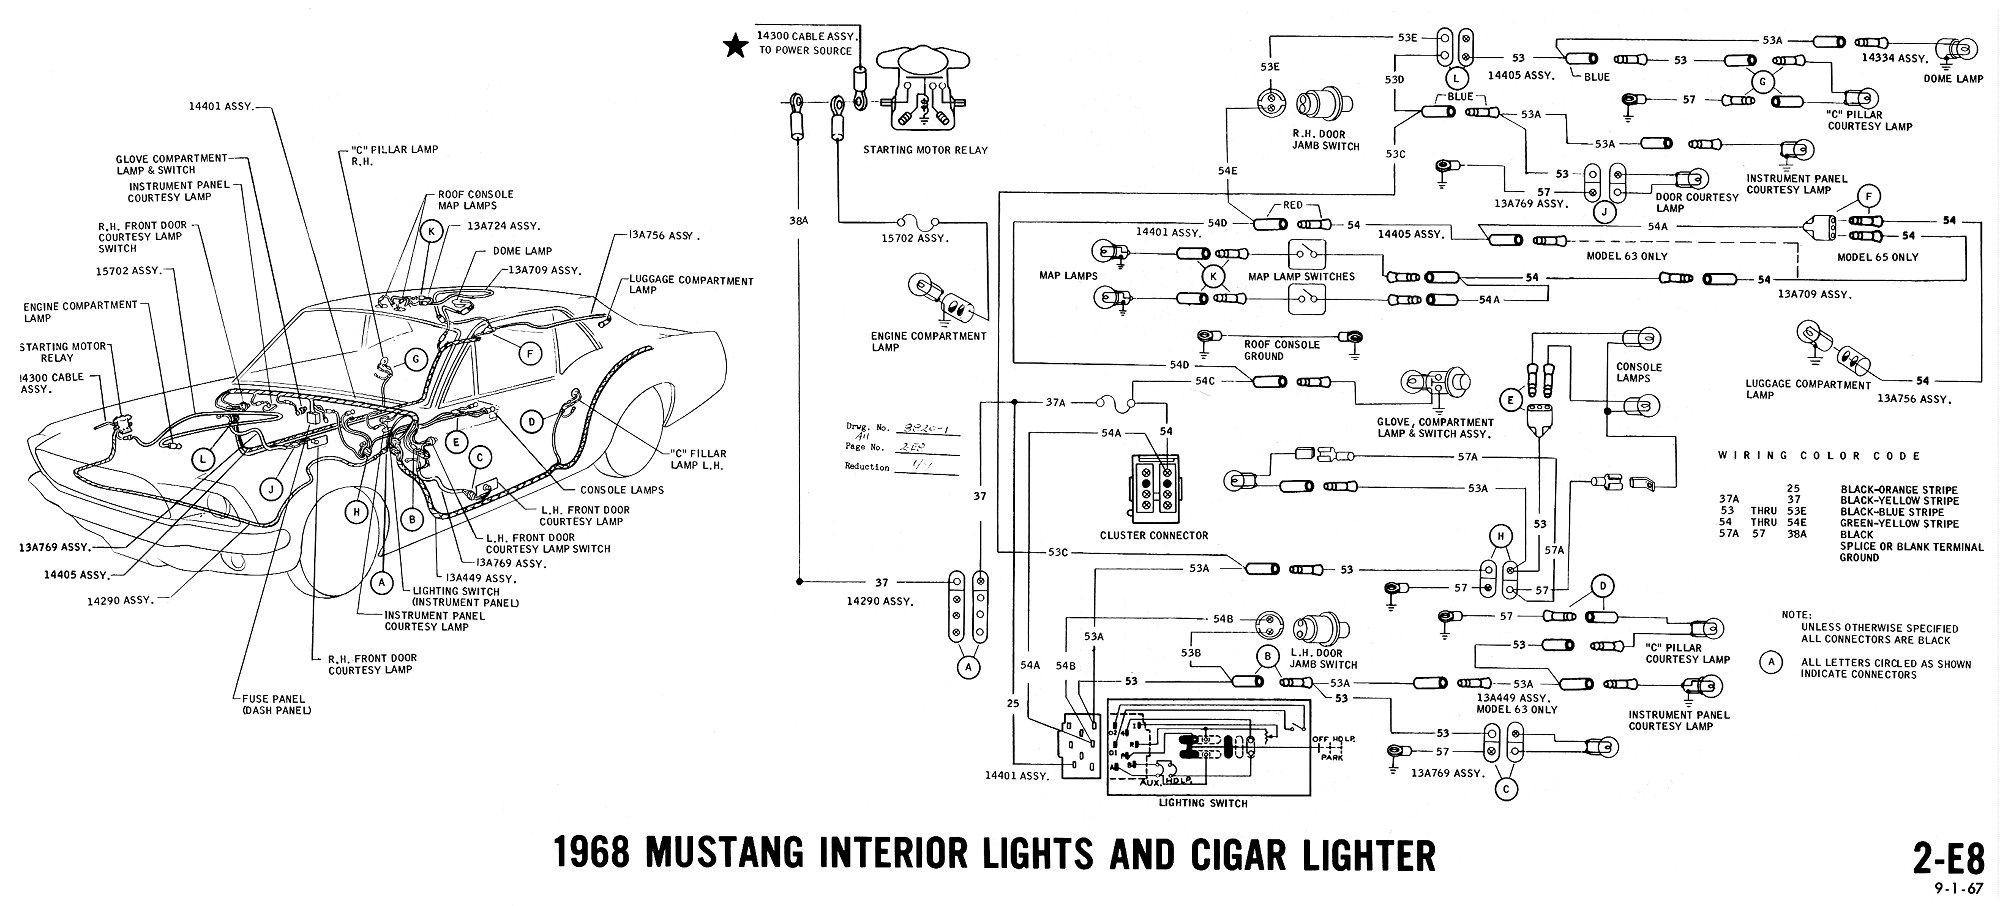 65 Mustang Horn Wiring Diagram | Wiring Diagram on 4 channel amp wiring diagram, circuit diagram, xplod wiring diagram, sony wire harness color codes, rockford fosgate amp wiring diagram, sony cdx m20 wiring-diagram, sony cdx-gt700hd wiring-diagram, sony cdx gt25mpw, sony remote control diagram, subwoofer wiring diagram, sony cdx gt120 wiring-diagram, sony deck wiring-diagram, sony cdx gt400, pioneer wiring color diagram, amplifier wiring diagram, dvd player wiring diagram, ibhs3 heated seat wiring diagram, car amps wiring diagram, block diagram, sony cdx gt06,